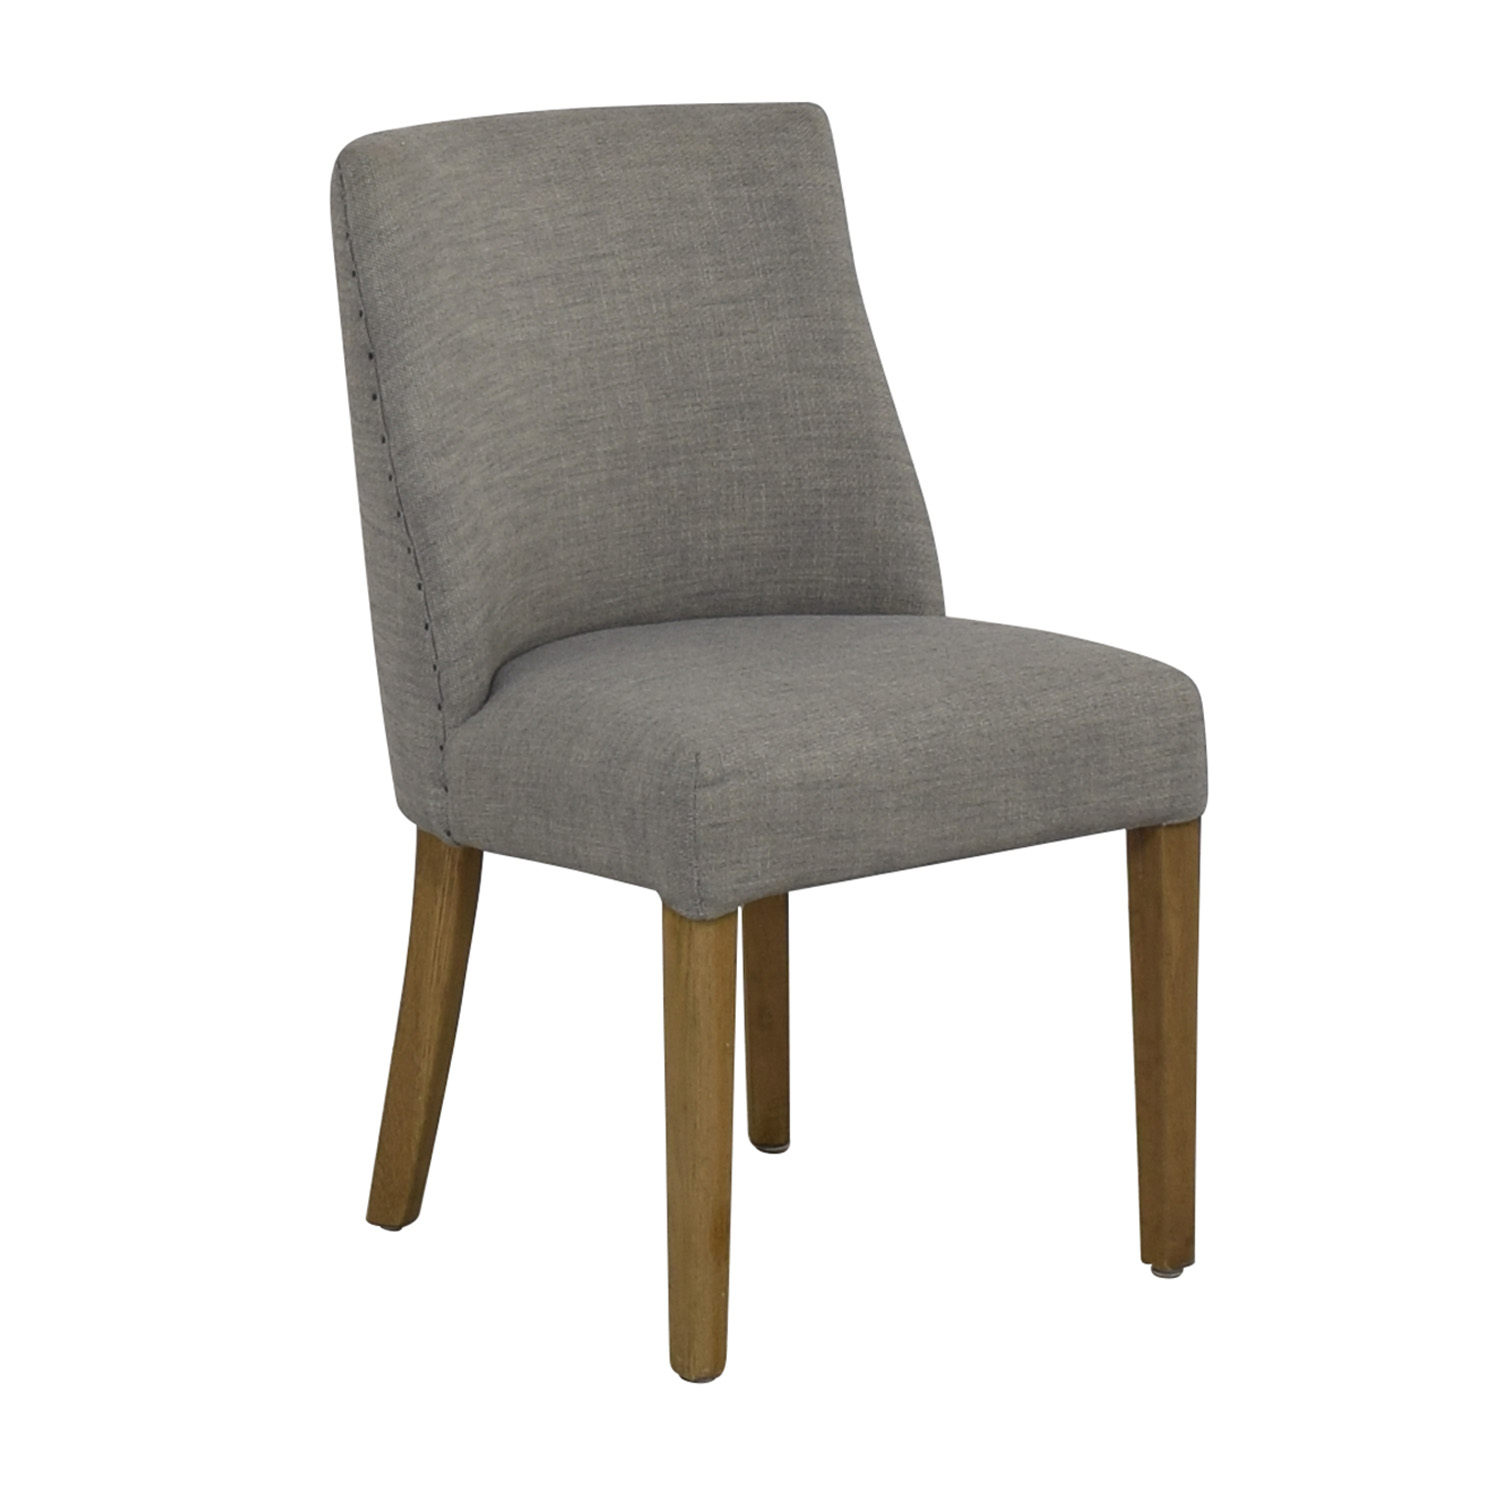 buy Restoration Hardware Restoration Hardware 1940S French Barrelback Fabric Side Chair online